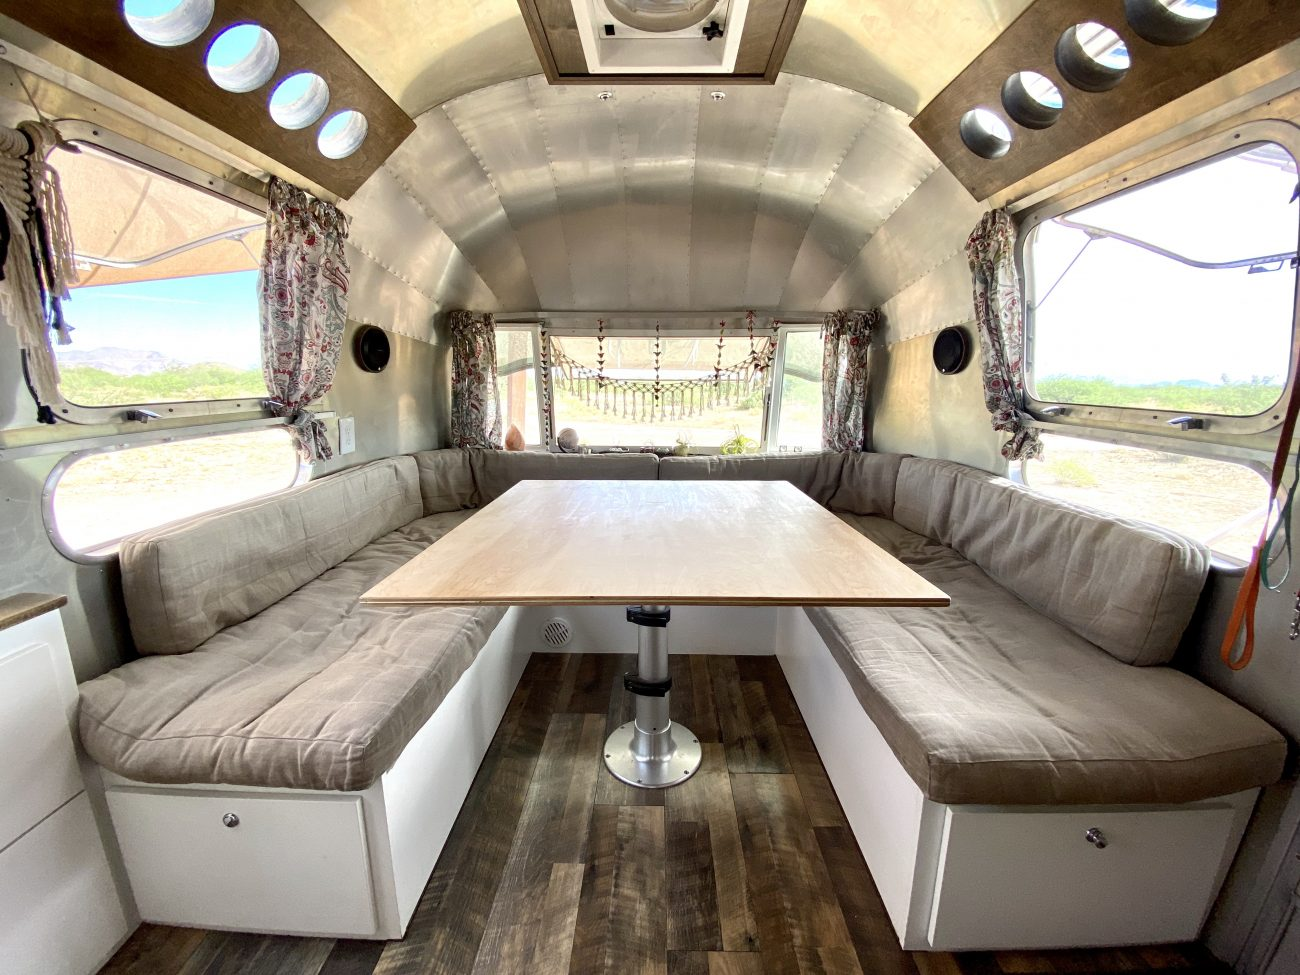 New Dining Room Table in Airstream